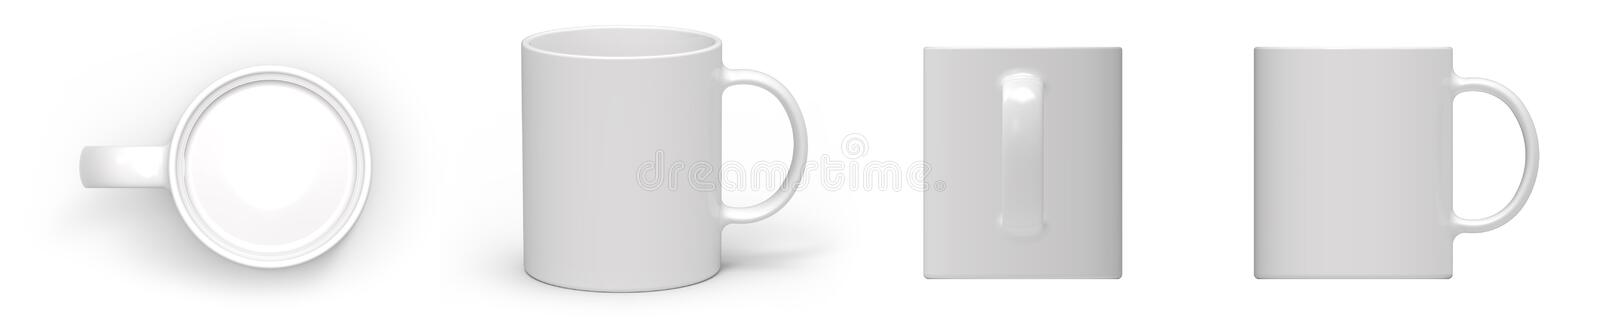 Empty white ceramic mug cup 4 view stock photography